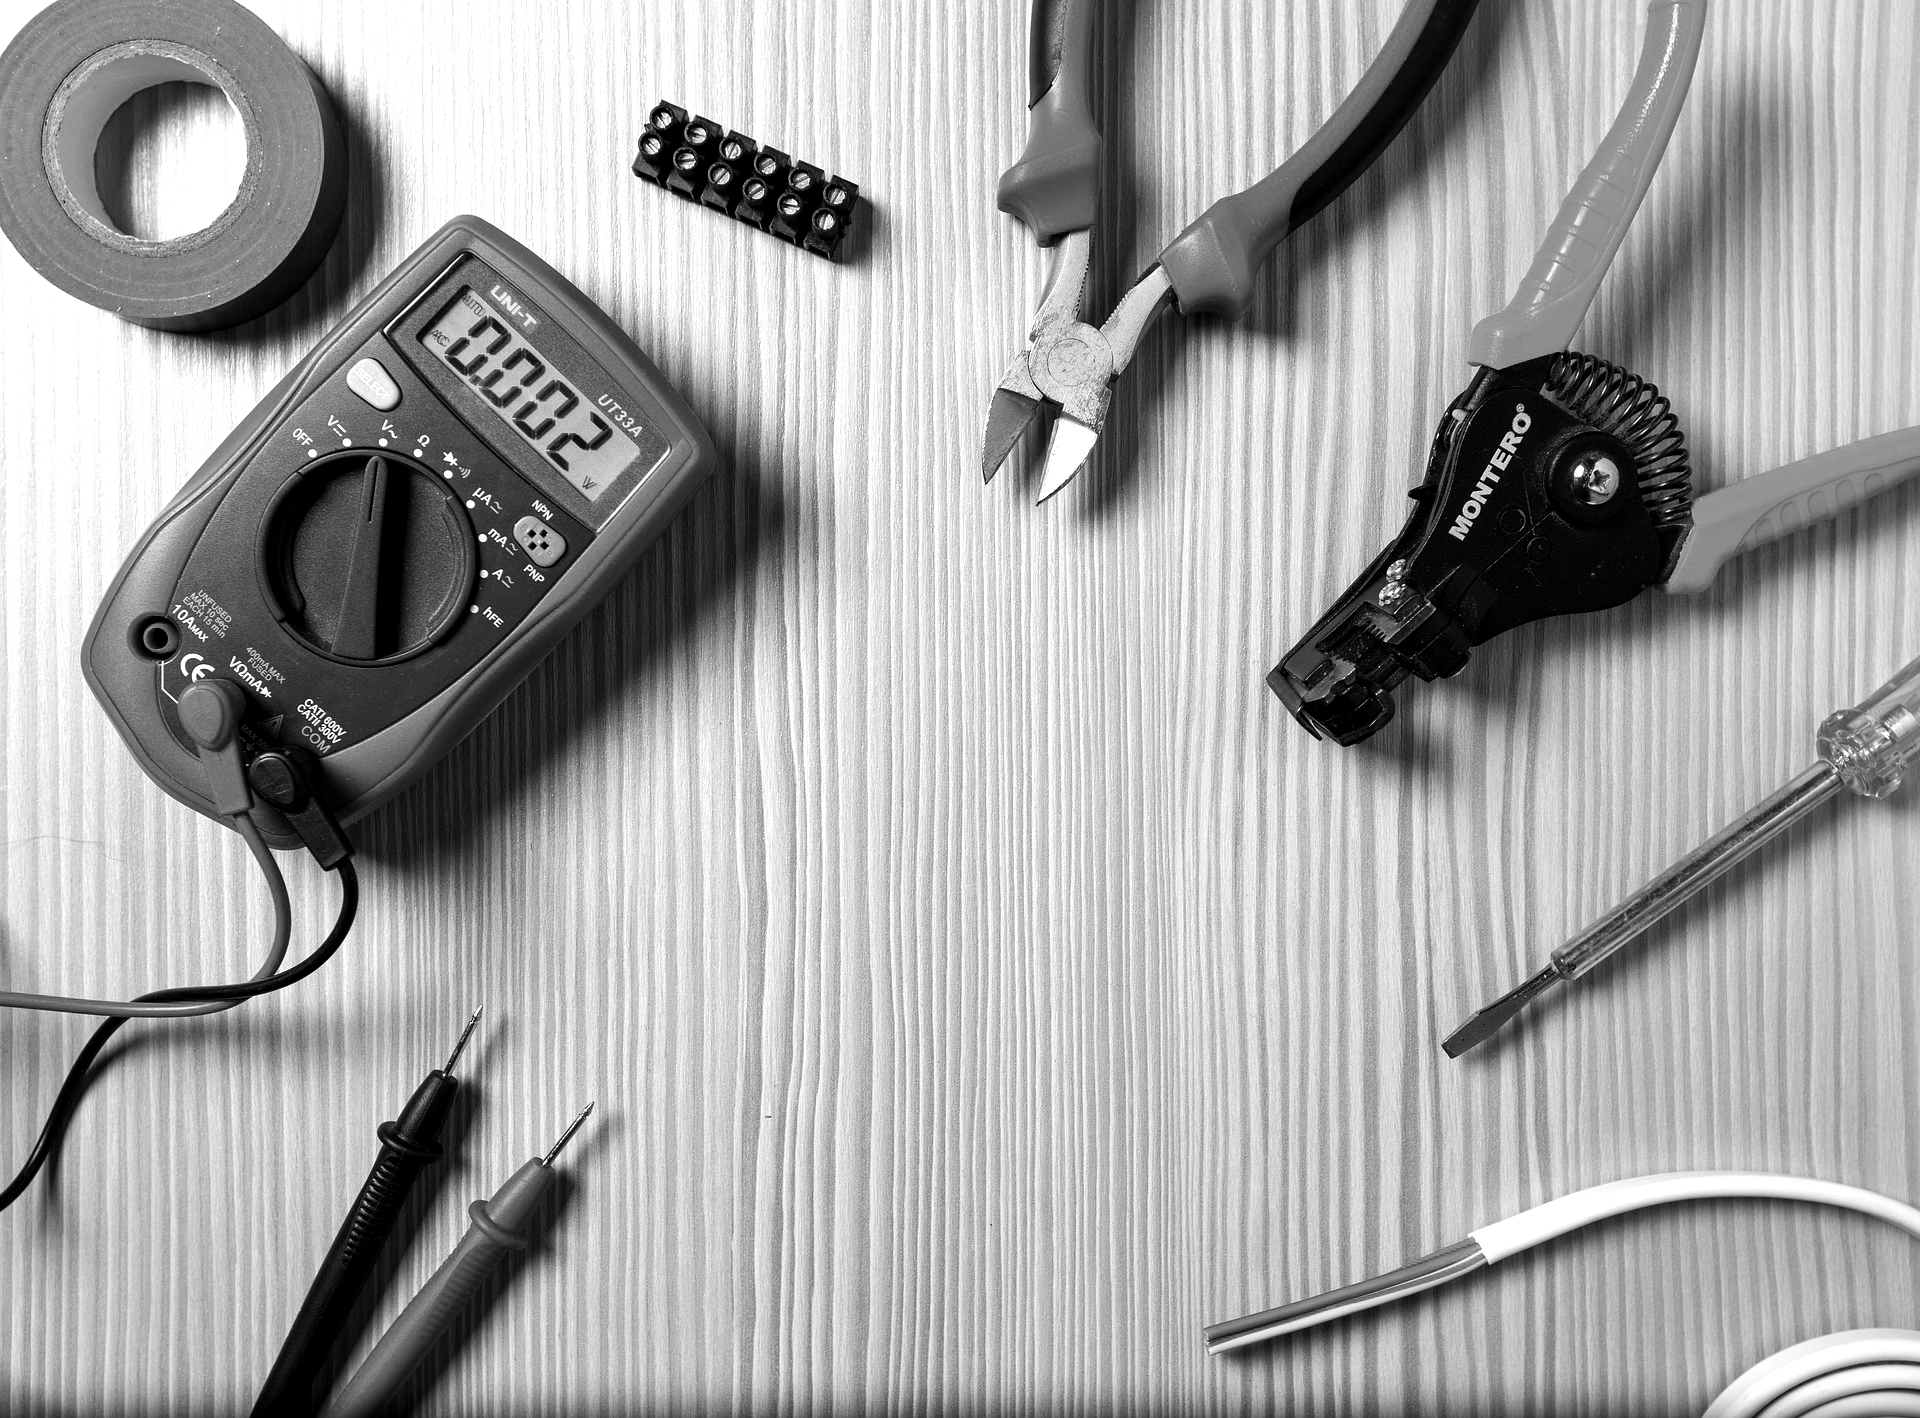 Electrical work done right - From basic troubleshooting to a large-scale construction project, we're here to provide you with prompt and professional electrical services.